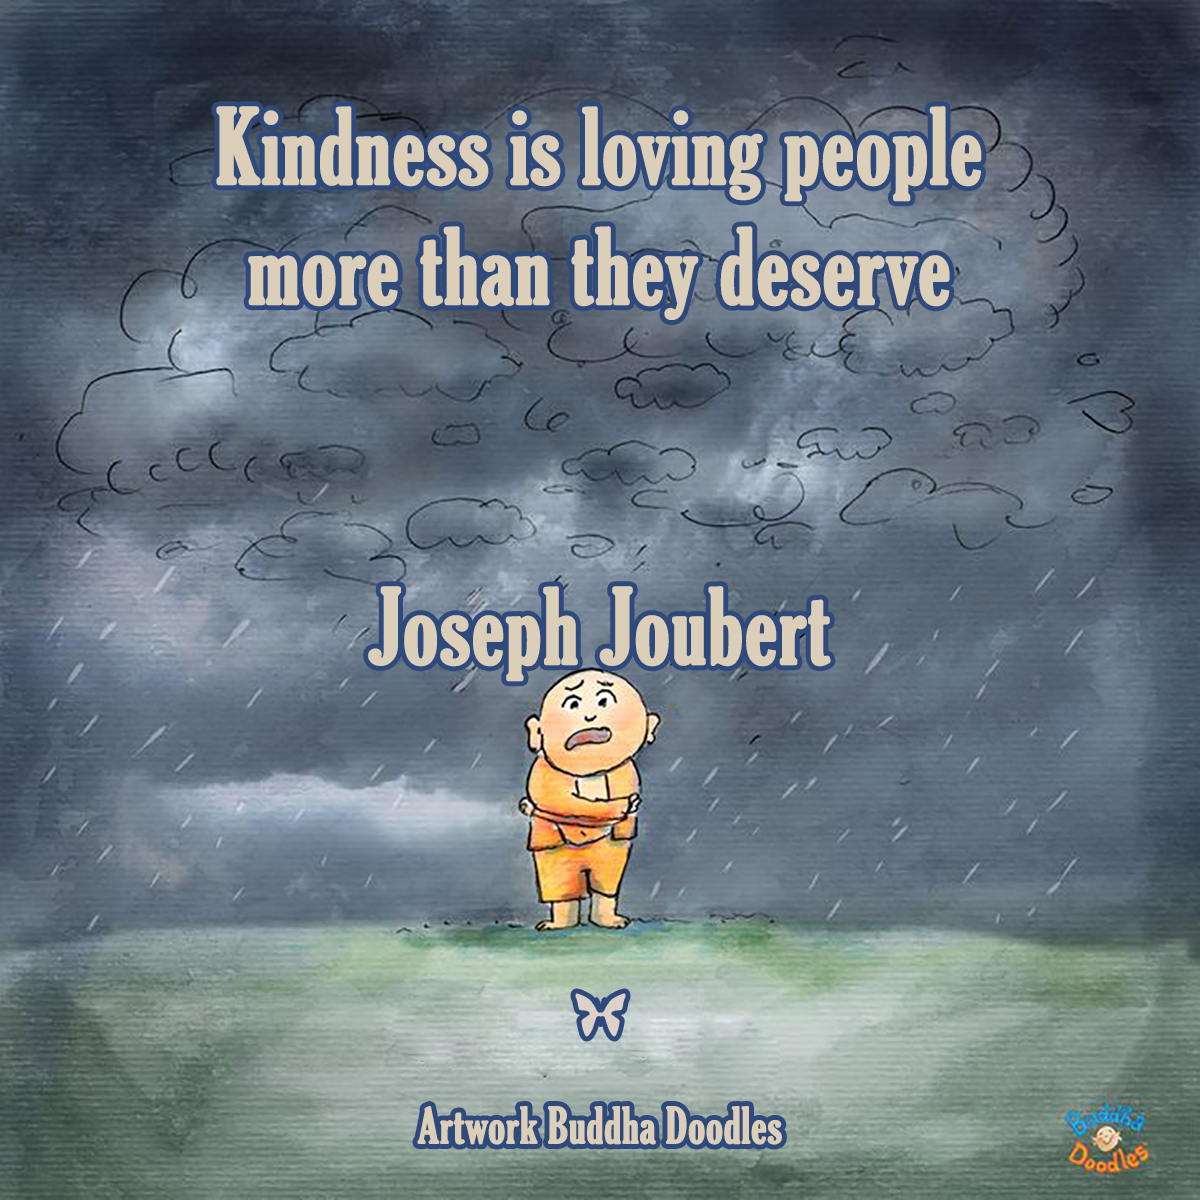 Loving Kindness Quotes Kindness Is Loving People More Than They Deserve  Joseph Joubert